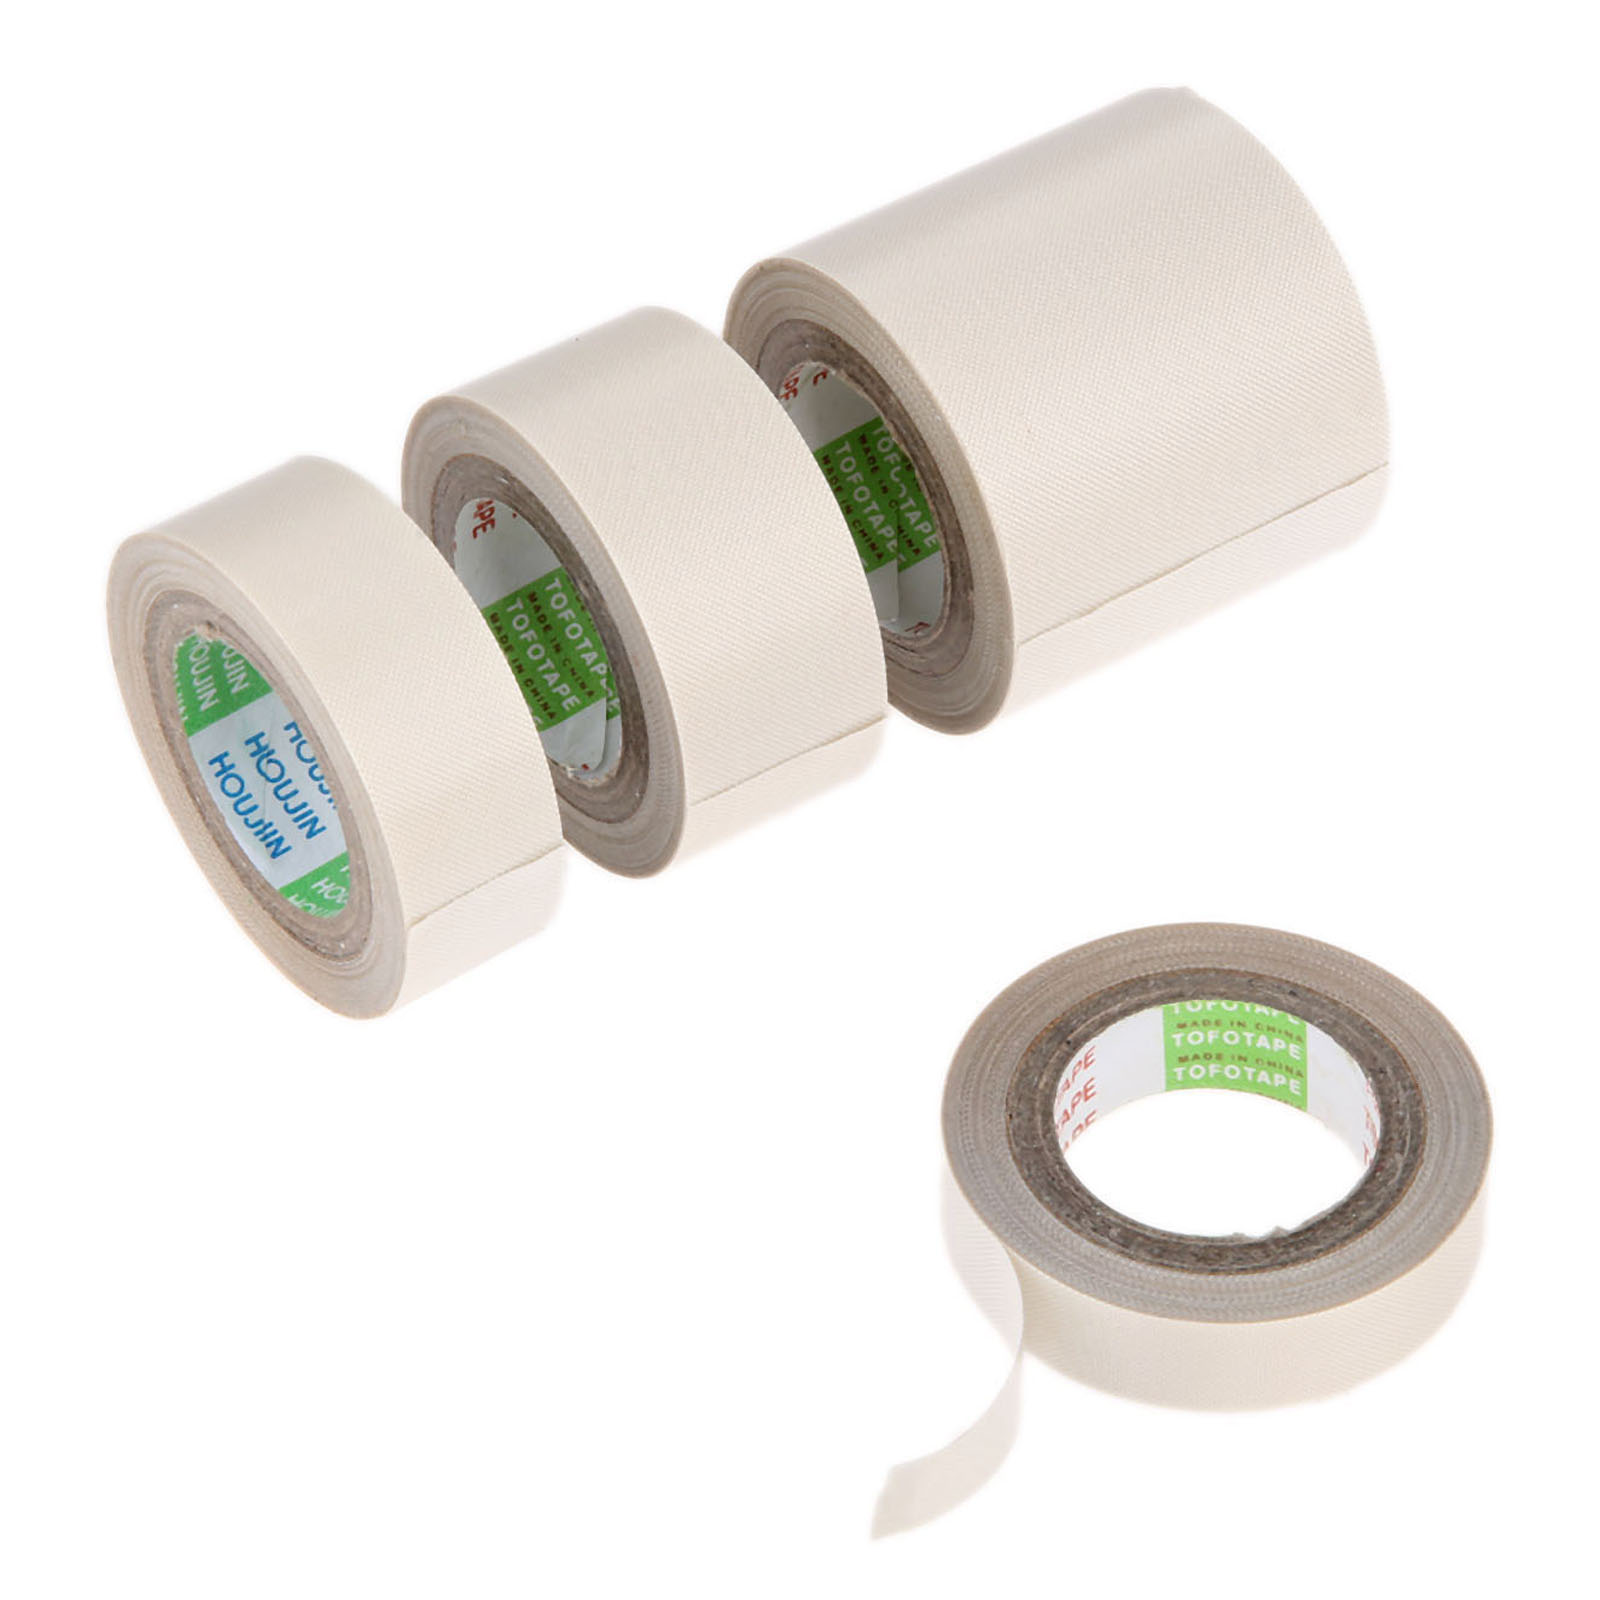 10m Long 0.13mm Thick PTFE High Temperature Heat-Resistant Adhesive Tape 13/19/25/50mm Wide Fiberglass Vacuum Sealing Tape